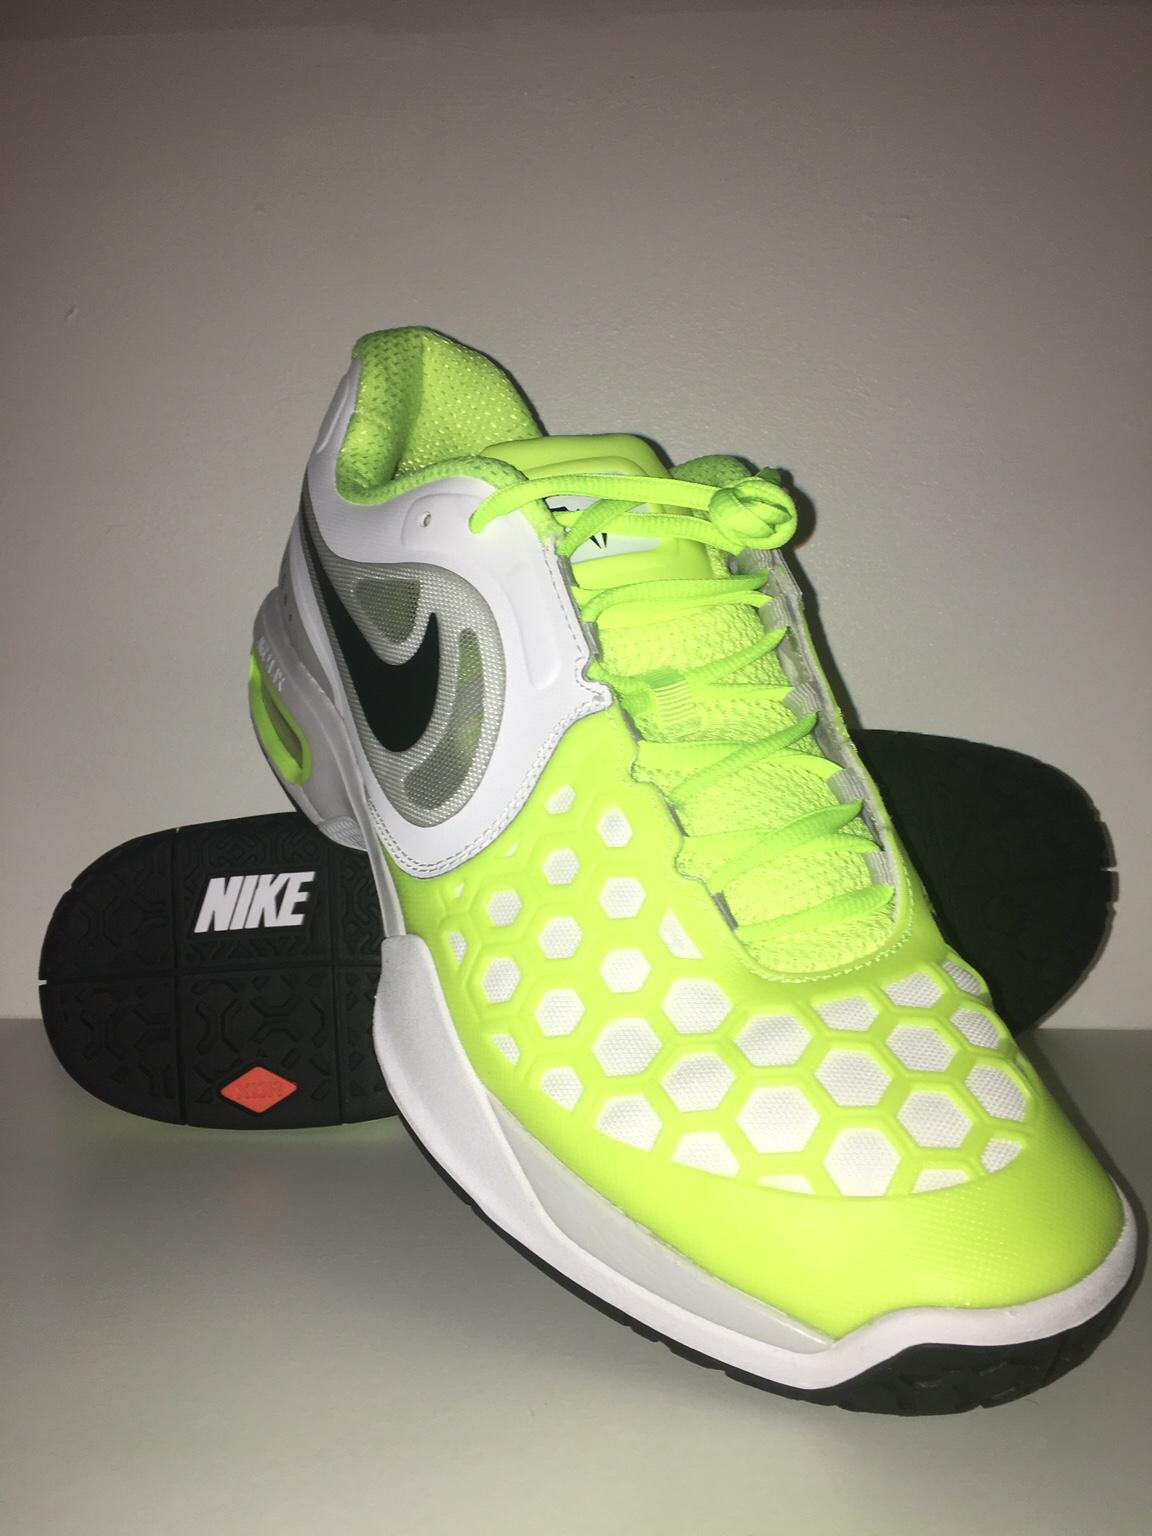 ac46362b7 Nike rafael Nadal tennis shoes in SE5 London for £69.99 for sale - Shpock